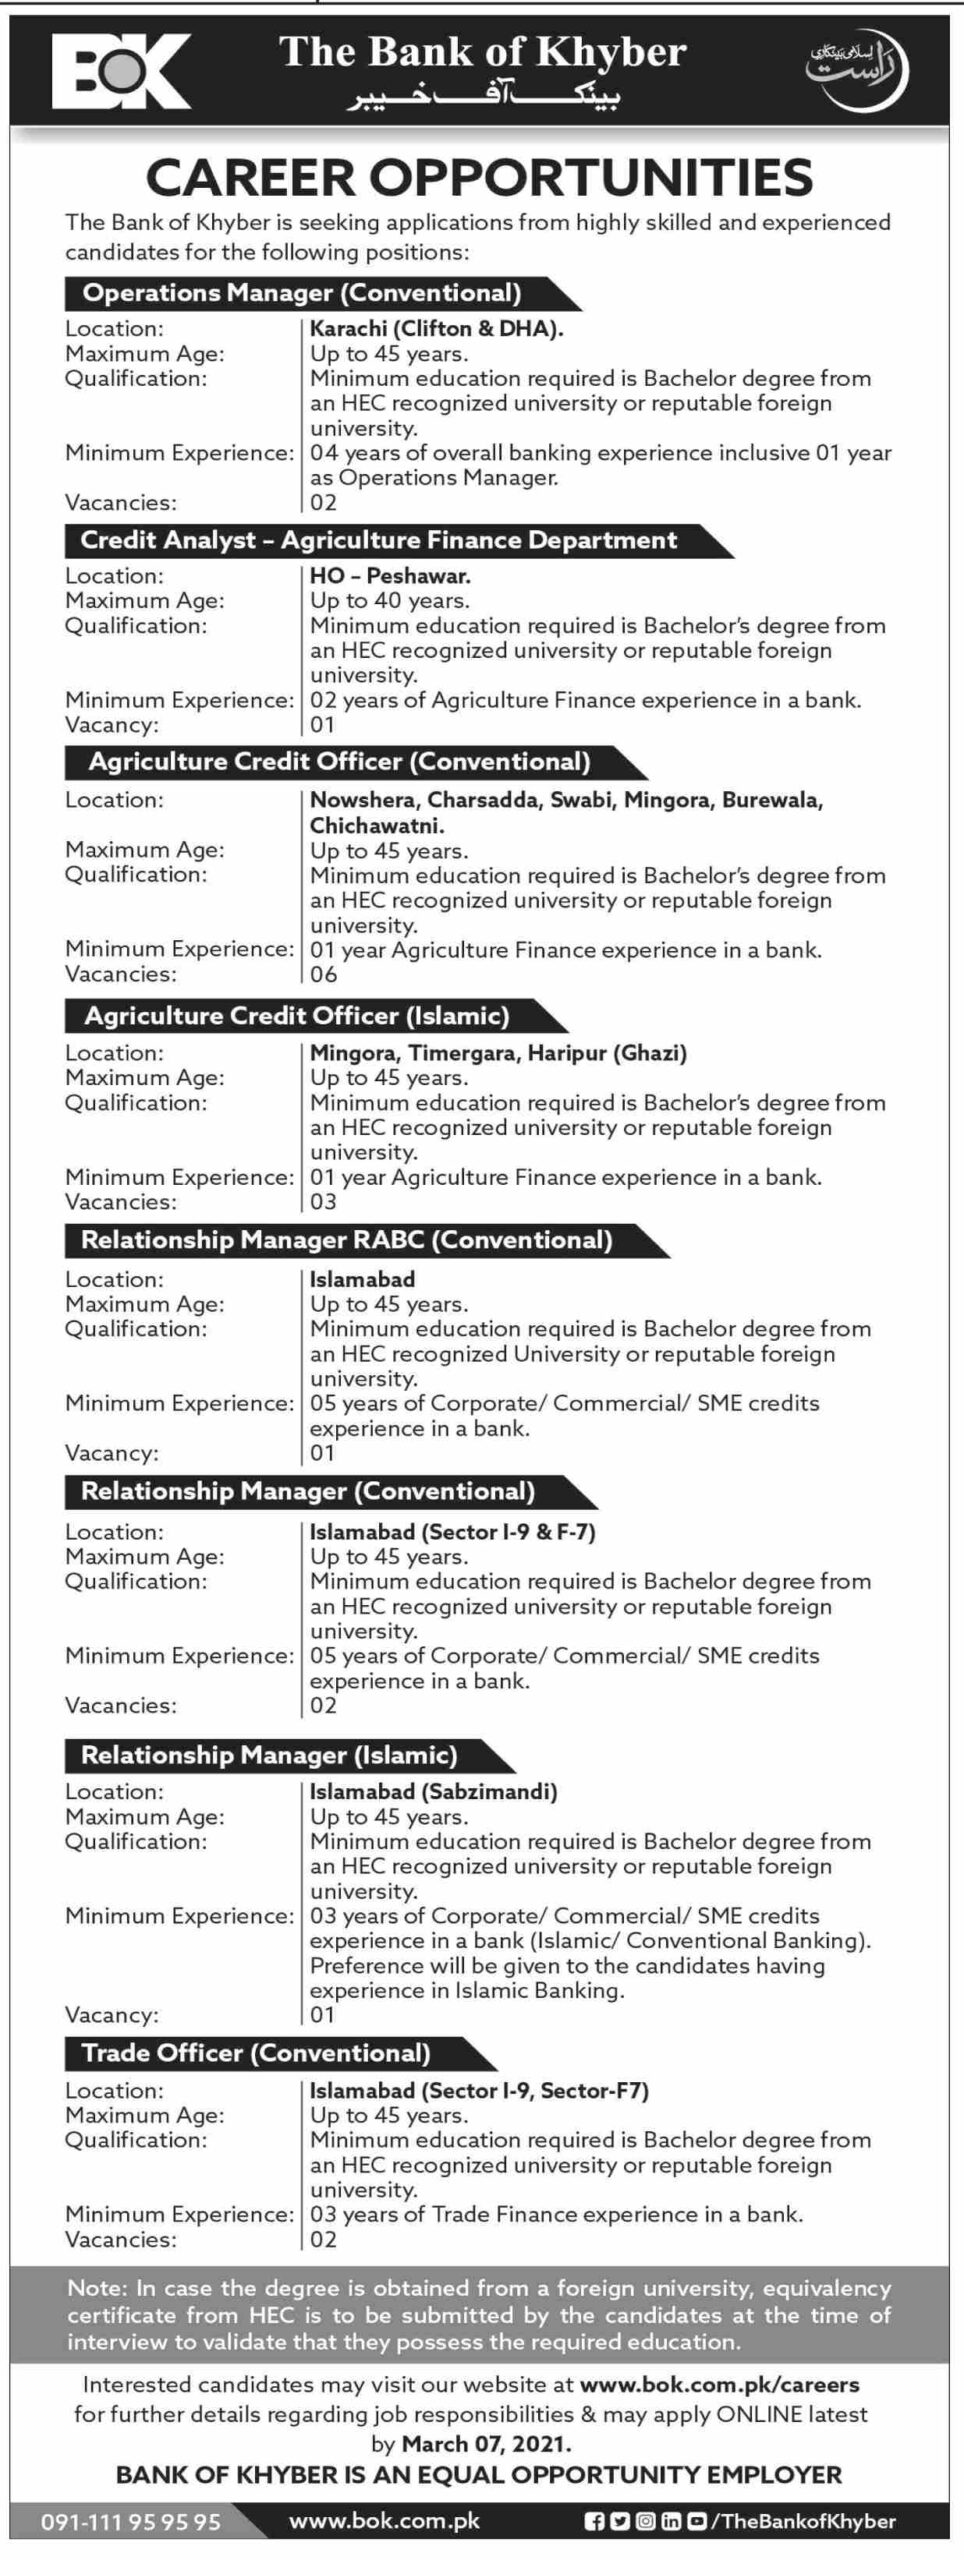 The bank of khyber latest jobs